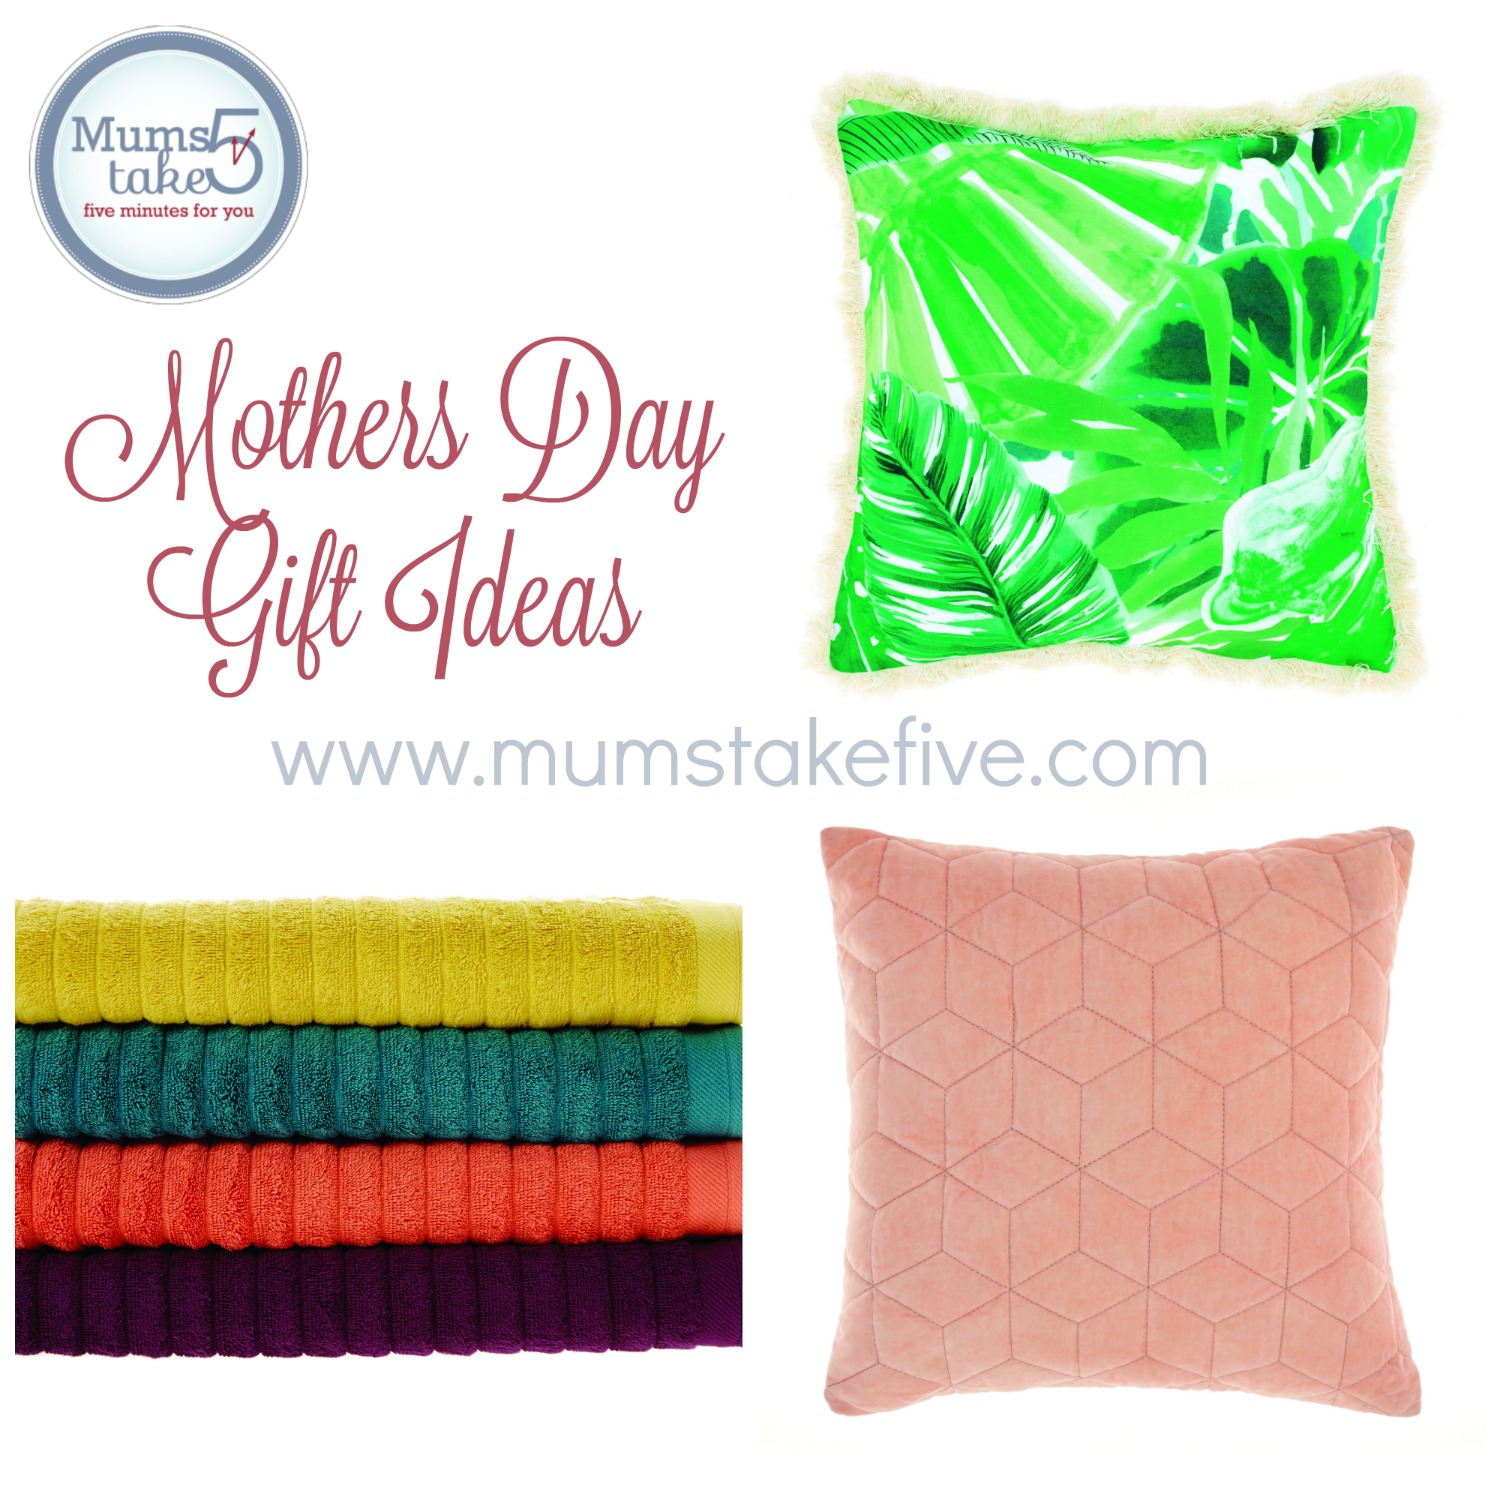 Mothers Day gift guide with Mums Take Five